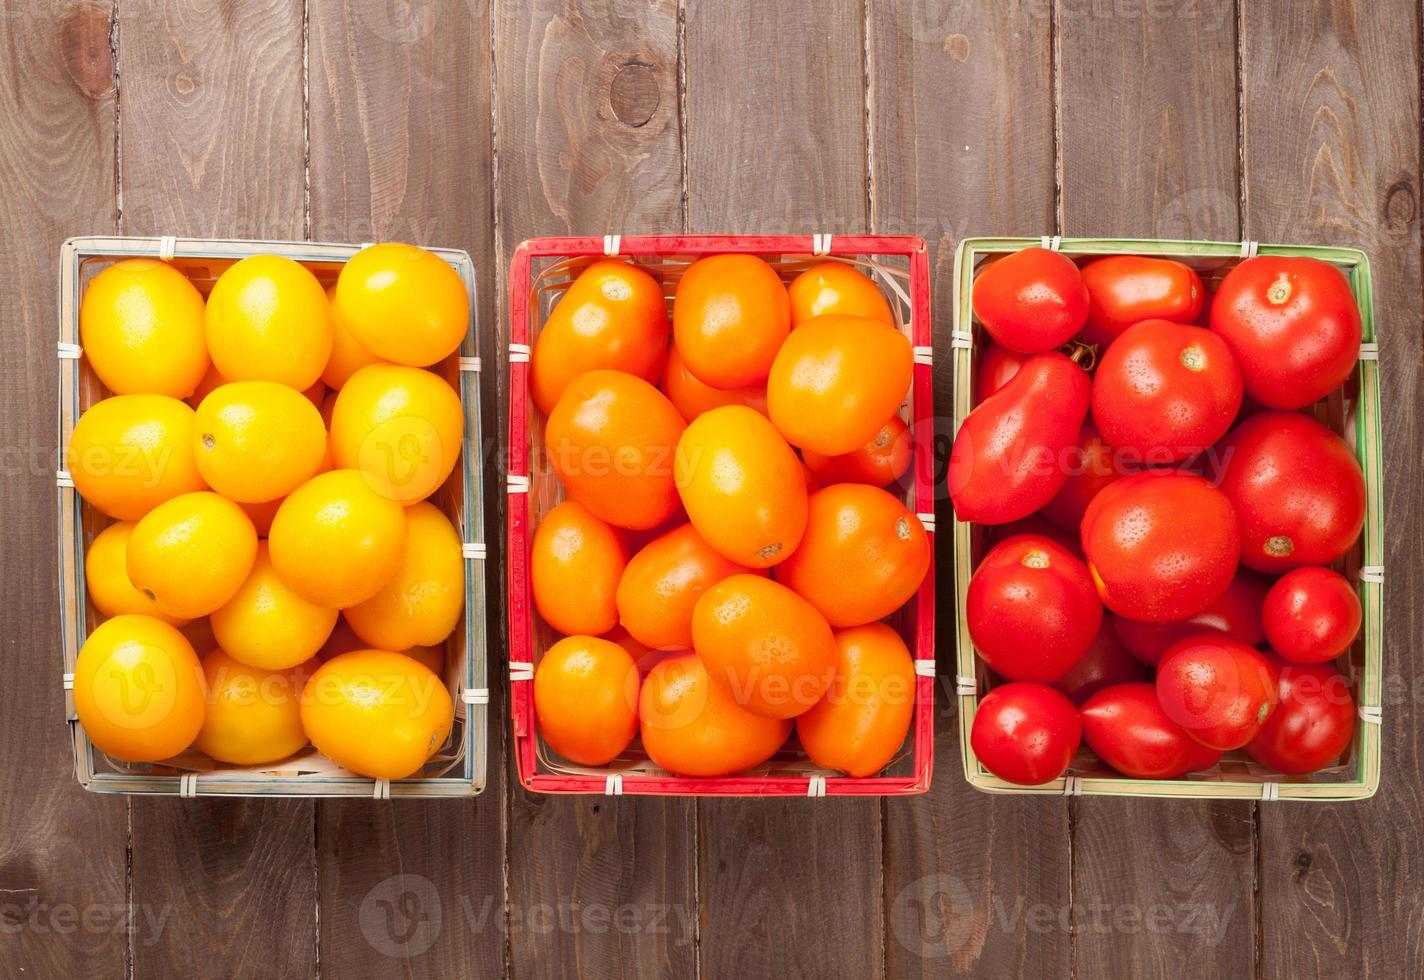 Colorful tomatoes on wooden table photo